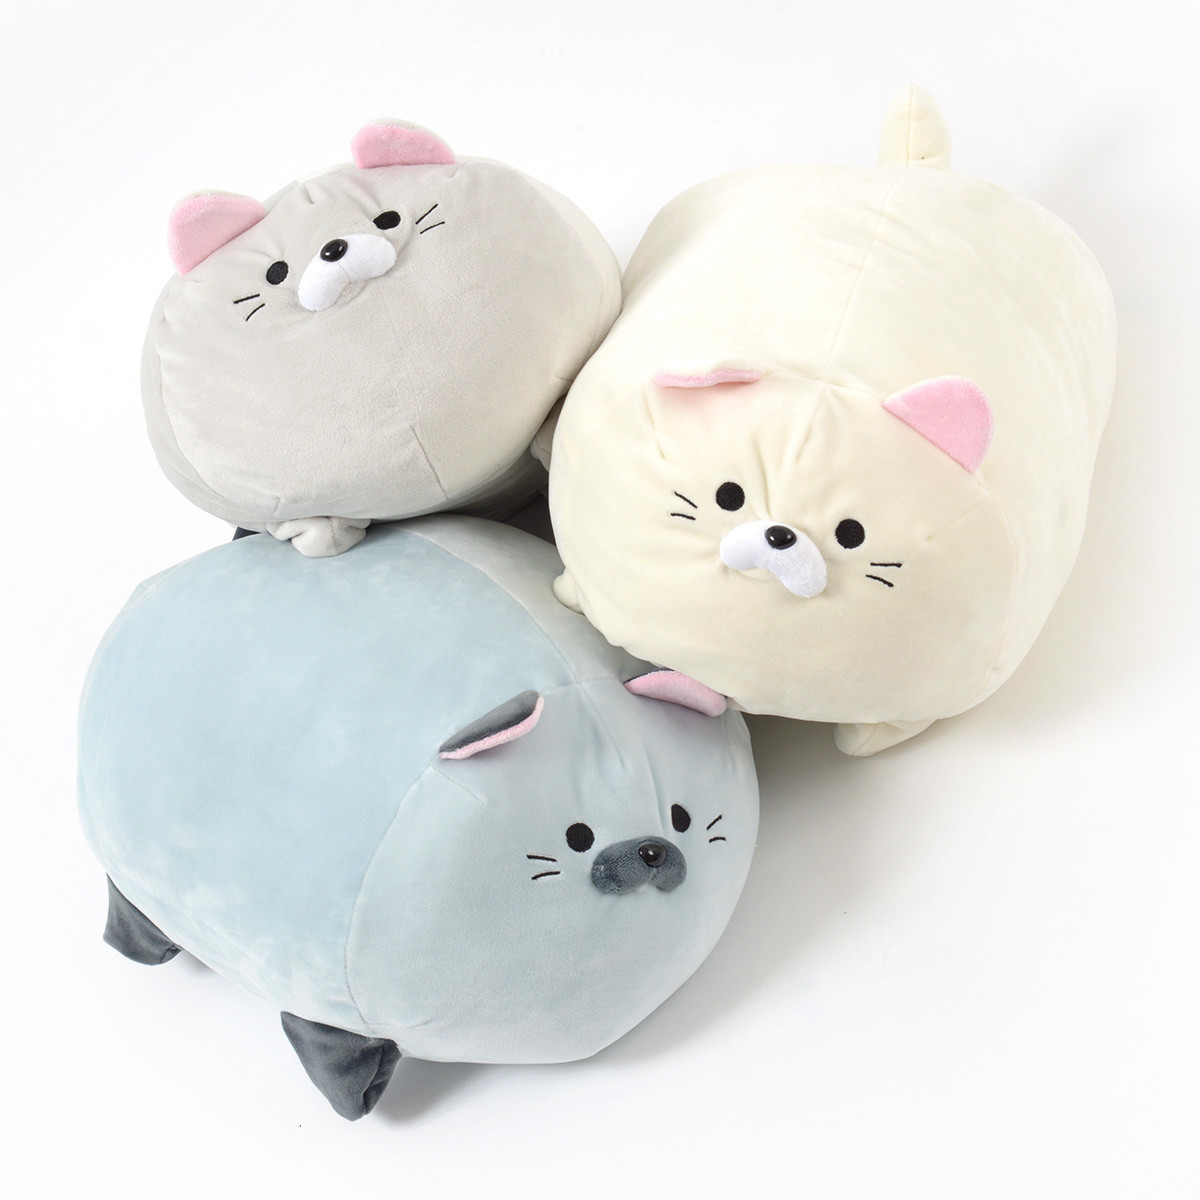 Cat Plush Toy Goroneko Summit Cat Plush Cushions